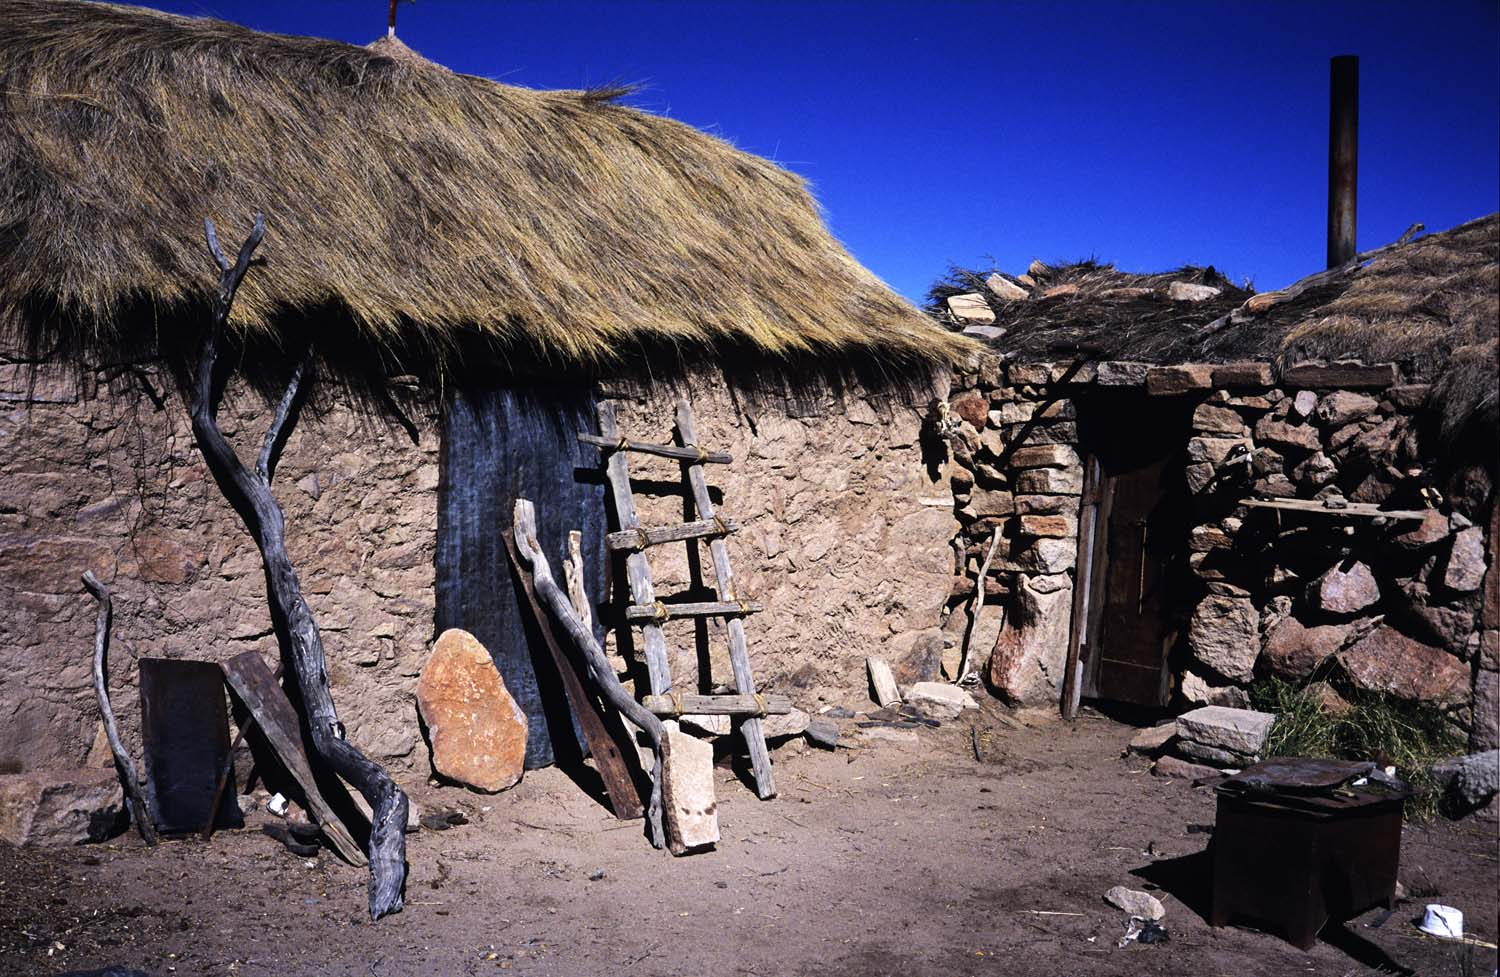 Stone construction typical of the high altiplano.Construcción en piedra típica de la región sur del altiplano.